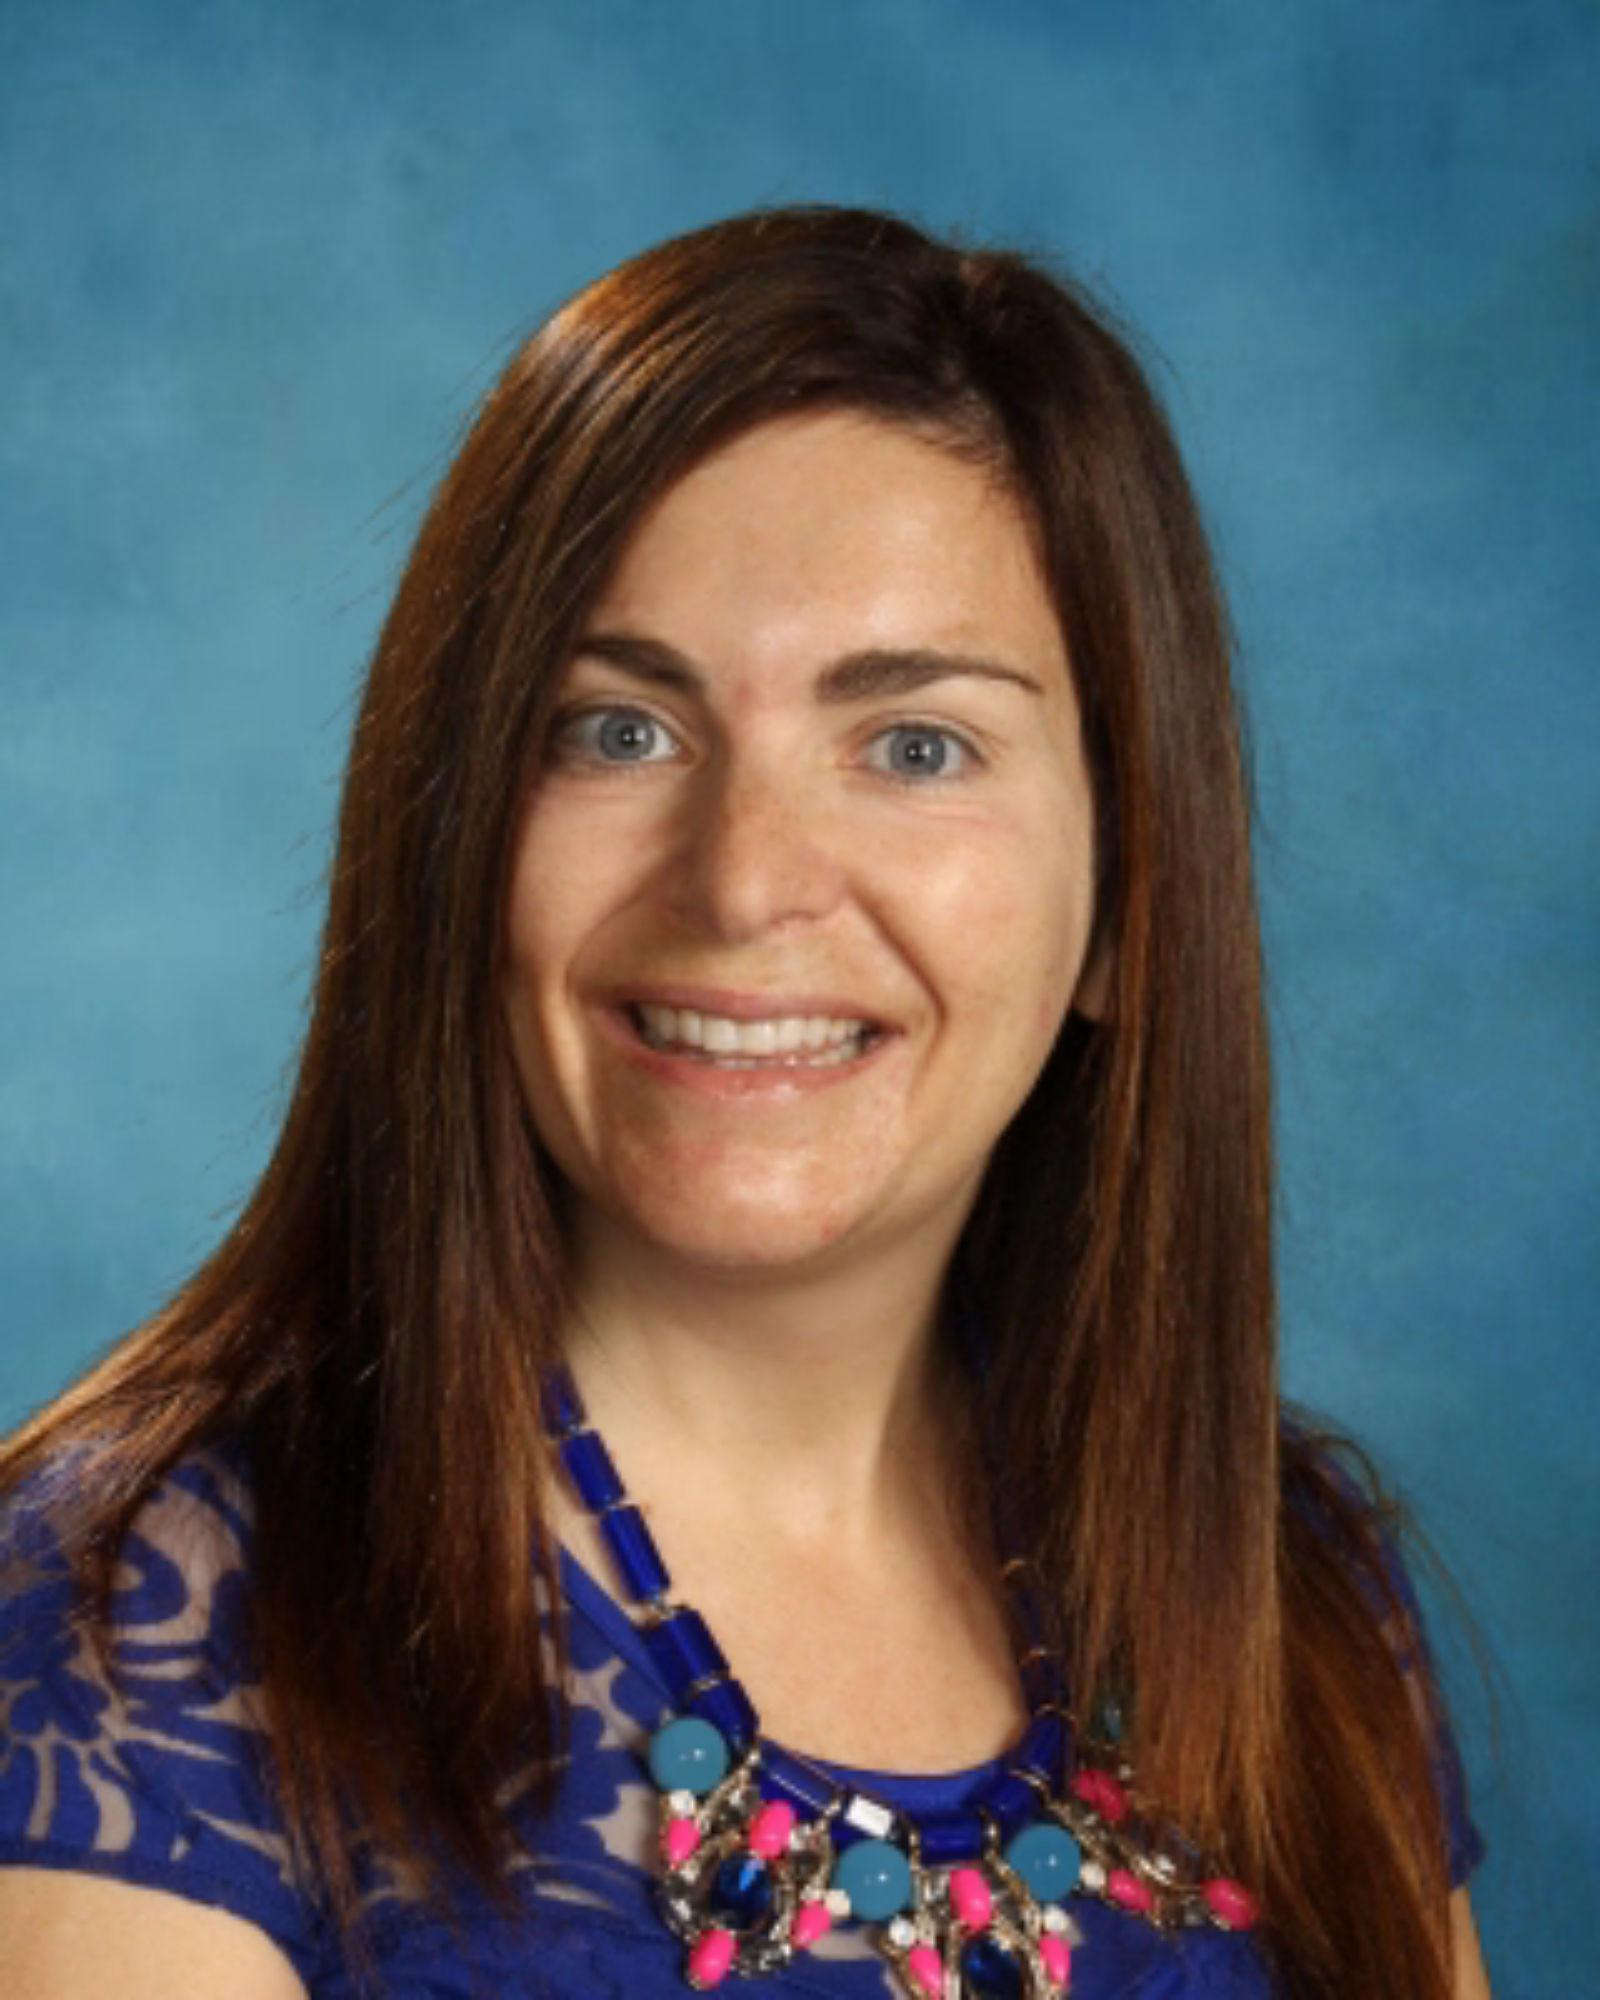 New ELL and English teacher Dawn LaRochelle brings a bounty of experience and enthusiasm to her position.